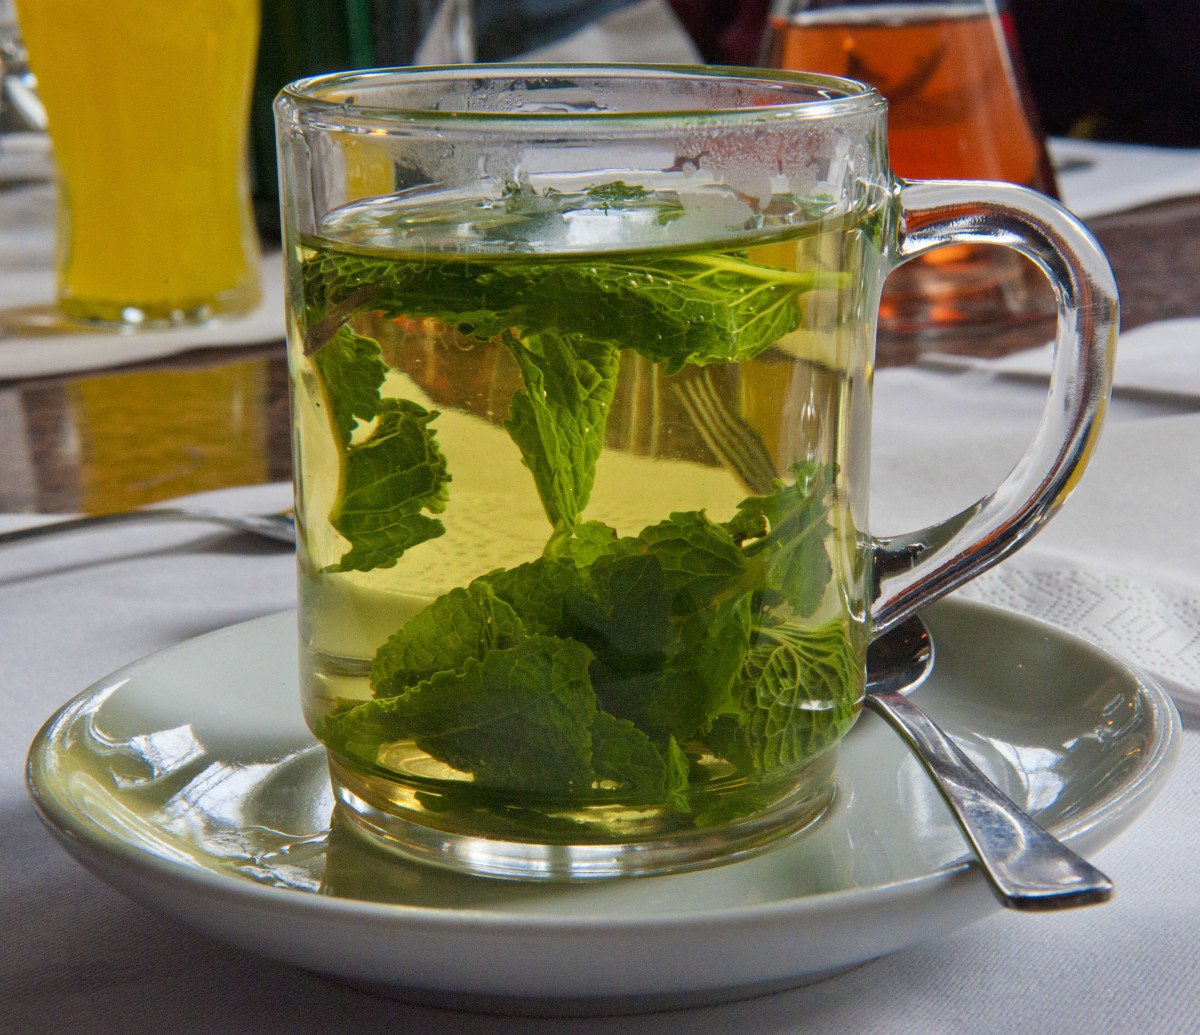 peppermint-herb-peppermint-tea-peppermint-essential-oil-uses-nutritional-and-health-benefits